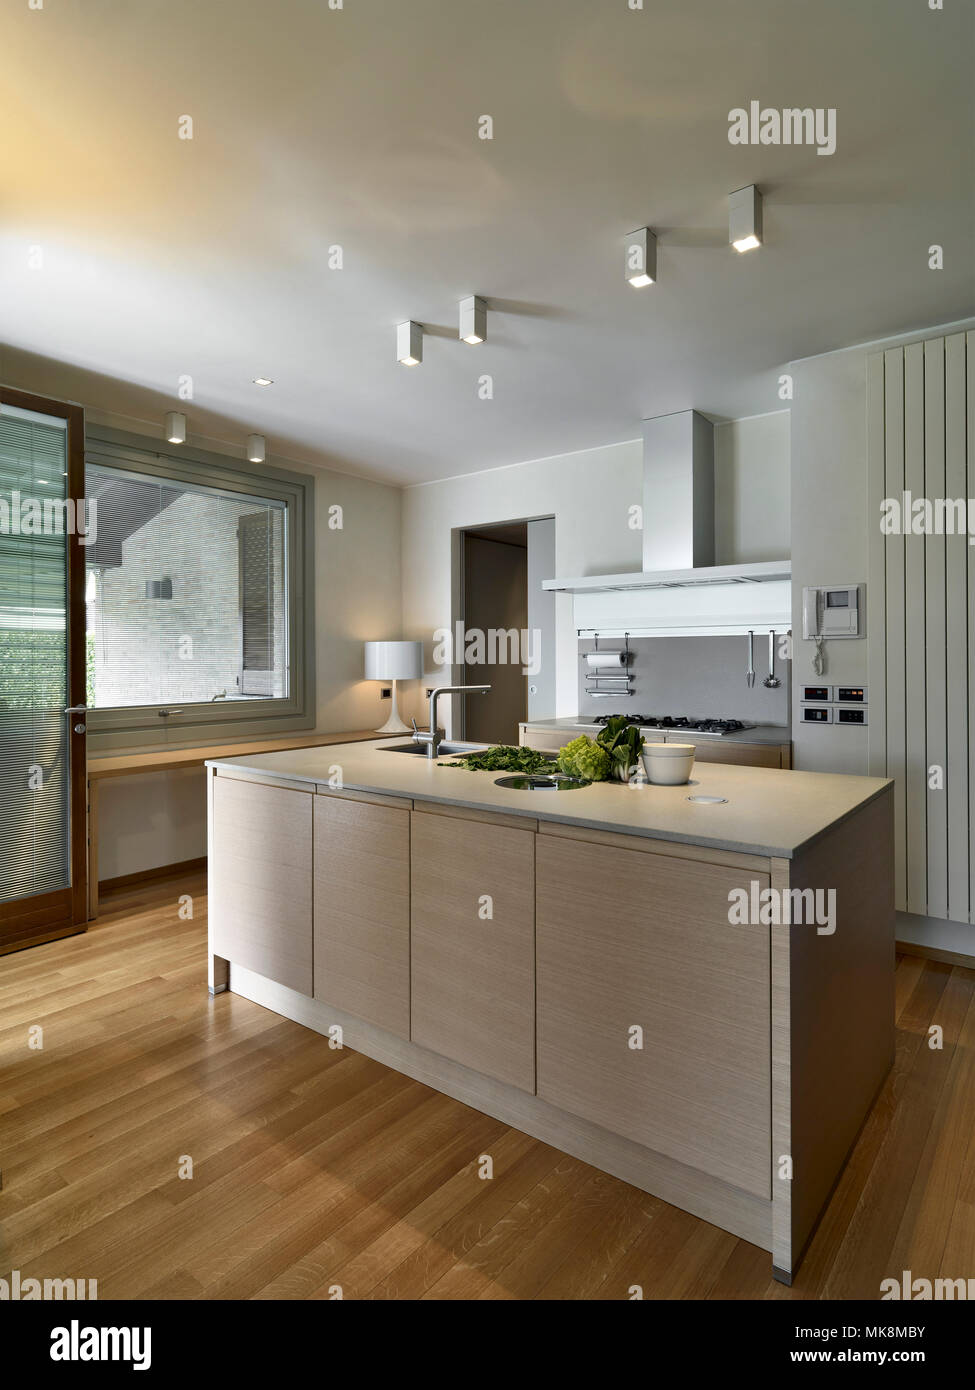 interiors shots of a modern kitchen with kitchen island with wooden floor - Stock Image